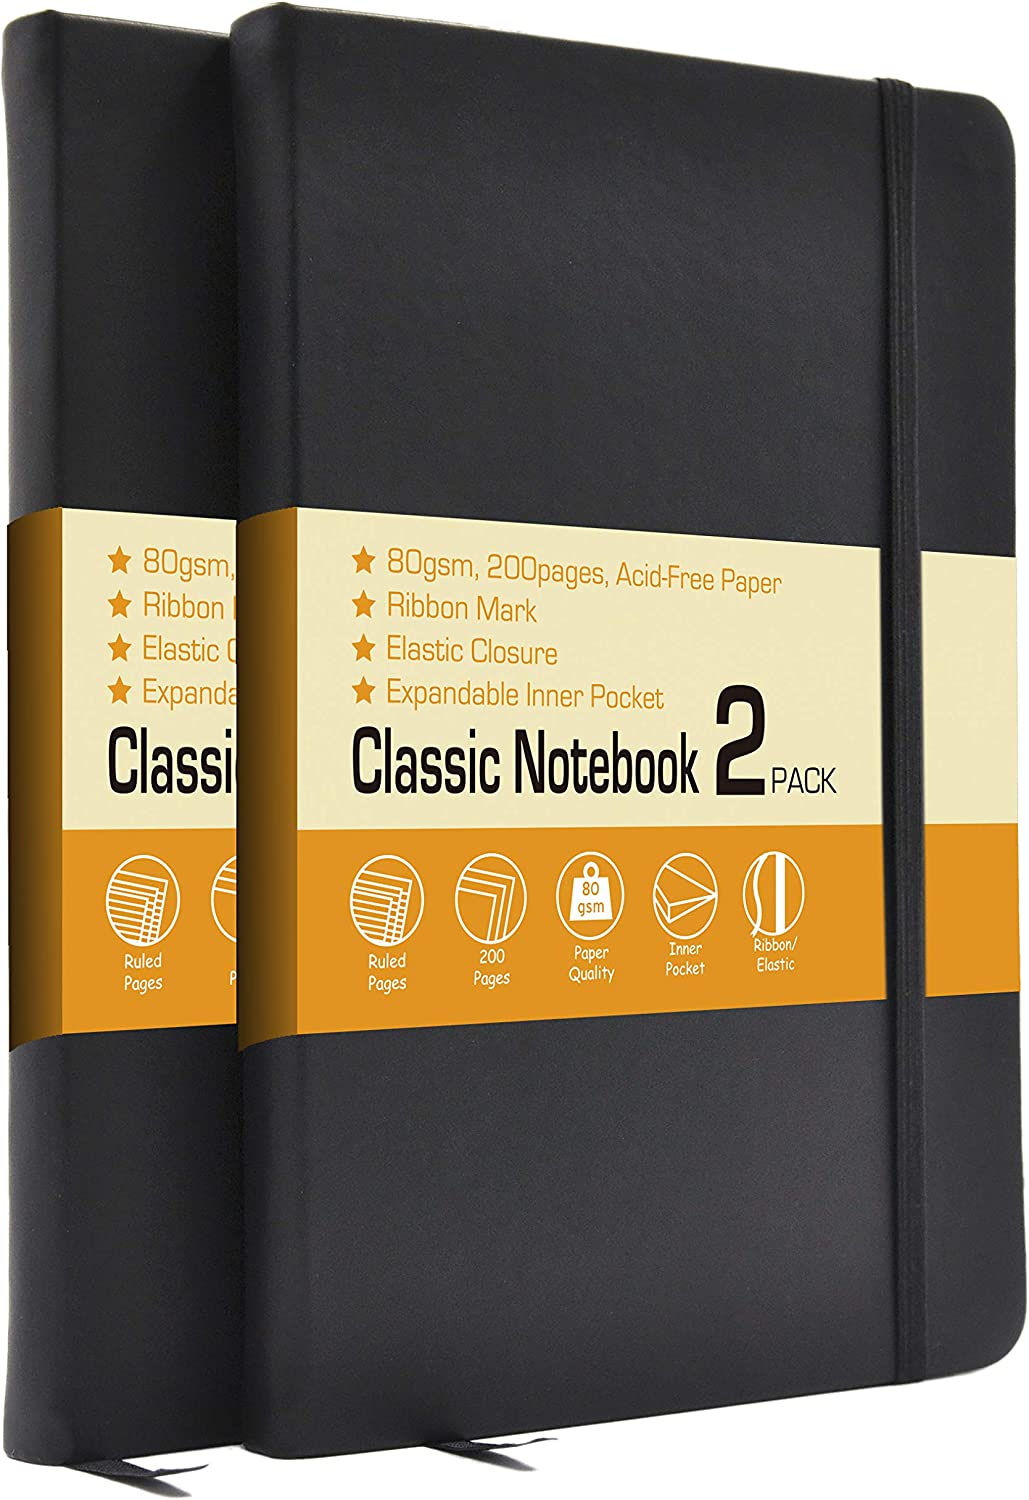 "LYTek Classic Notebook Journals, 2 Pack 5.15""x8.25"" Ruled Hardcover Notebooks,Faux Leather and Elastic Closure with Pocket,Premium Acid Free Paper,200 Pages Per Pack. (Black)"